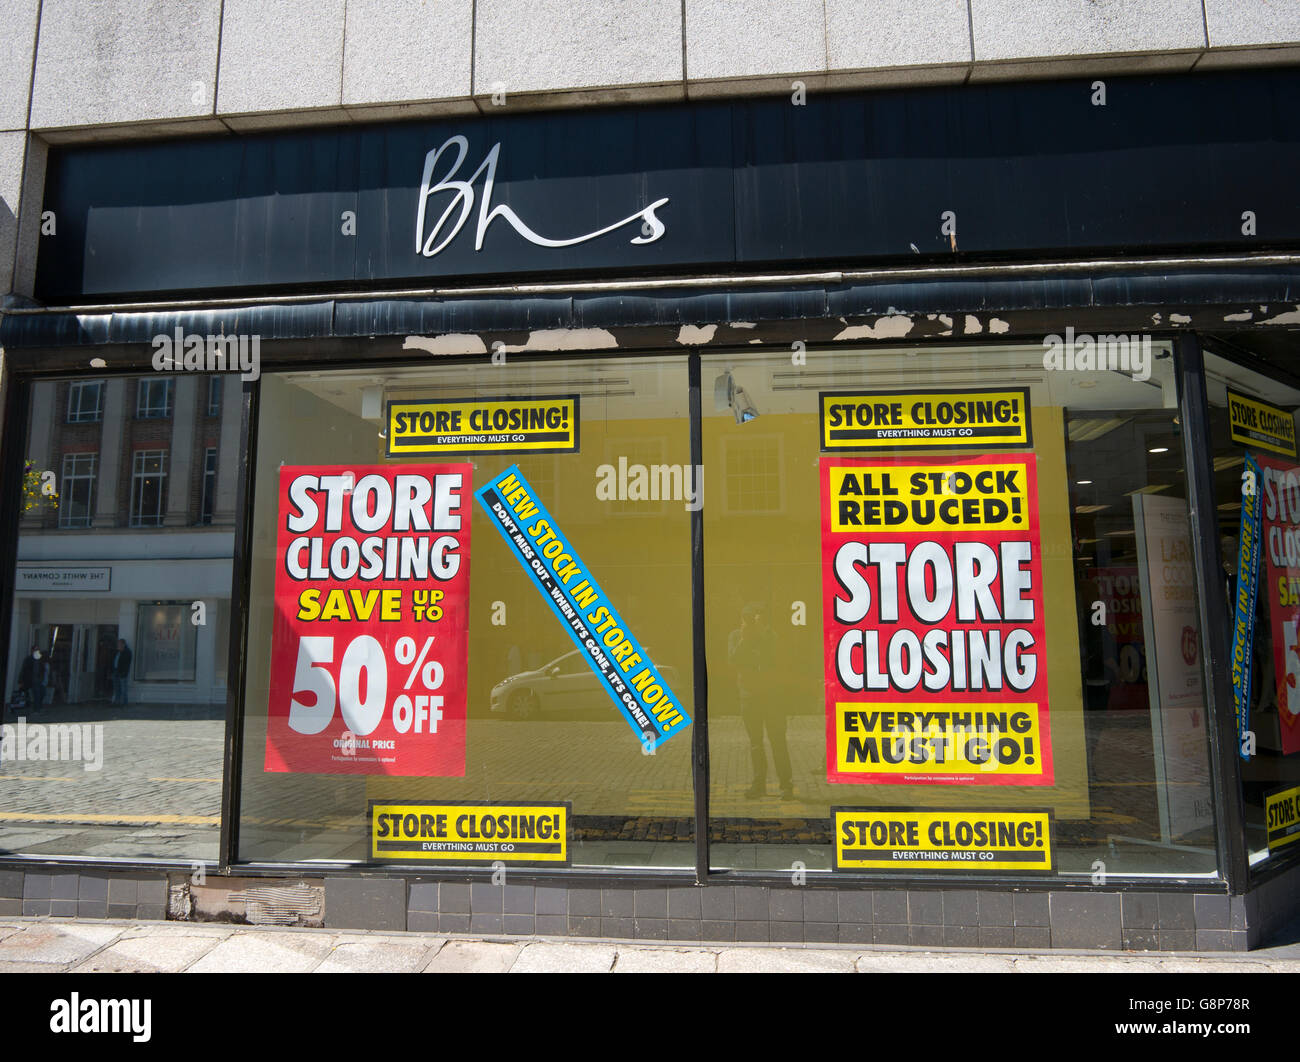 BHS store closing everything must go signs in shop window, Truro, Cornwall UK. - Stock Image